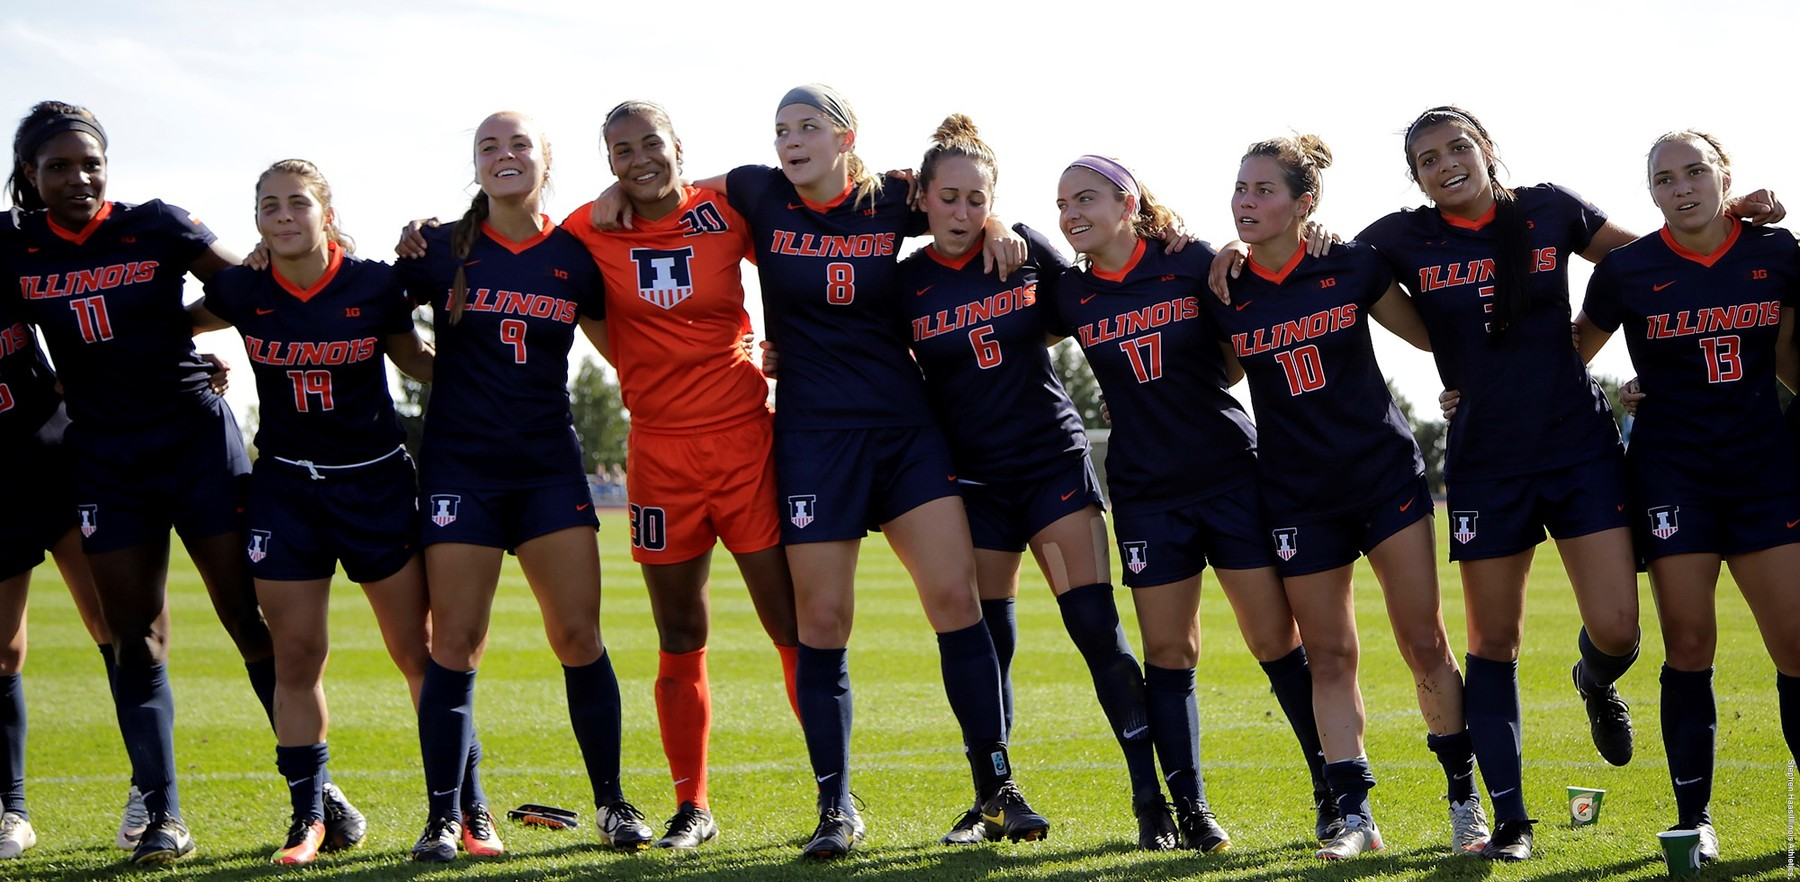 Members of the Fighting Illini soccer team link arms and sway